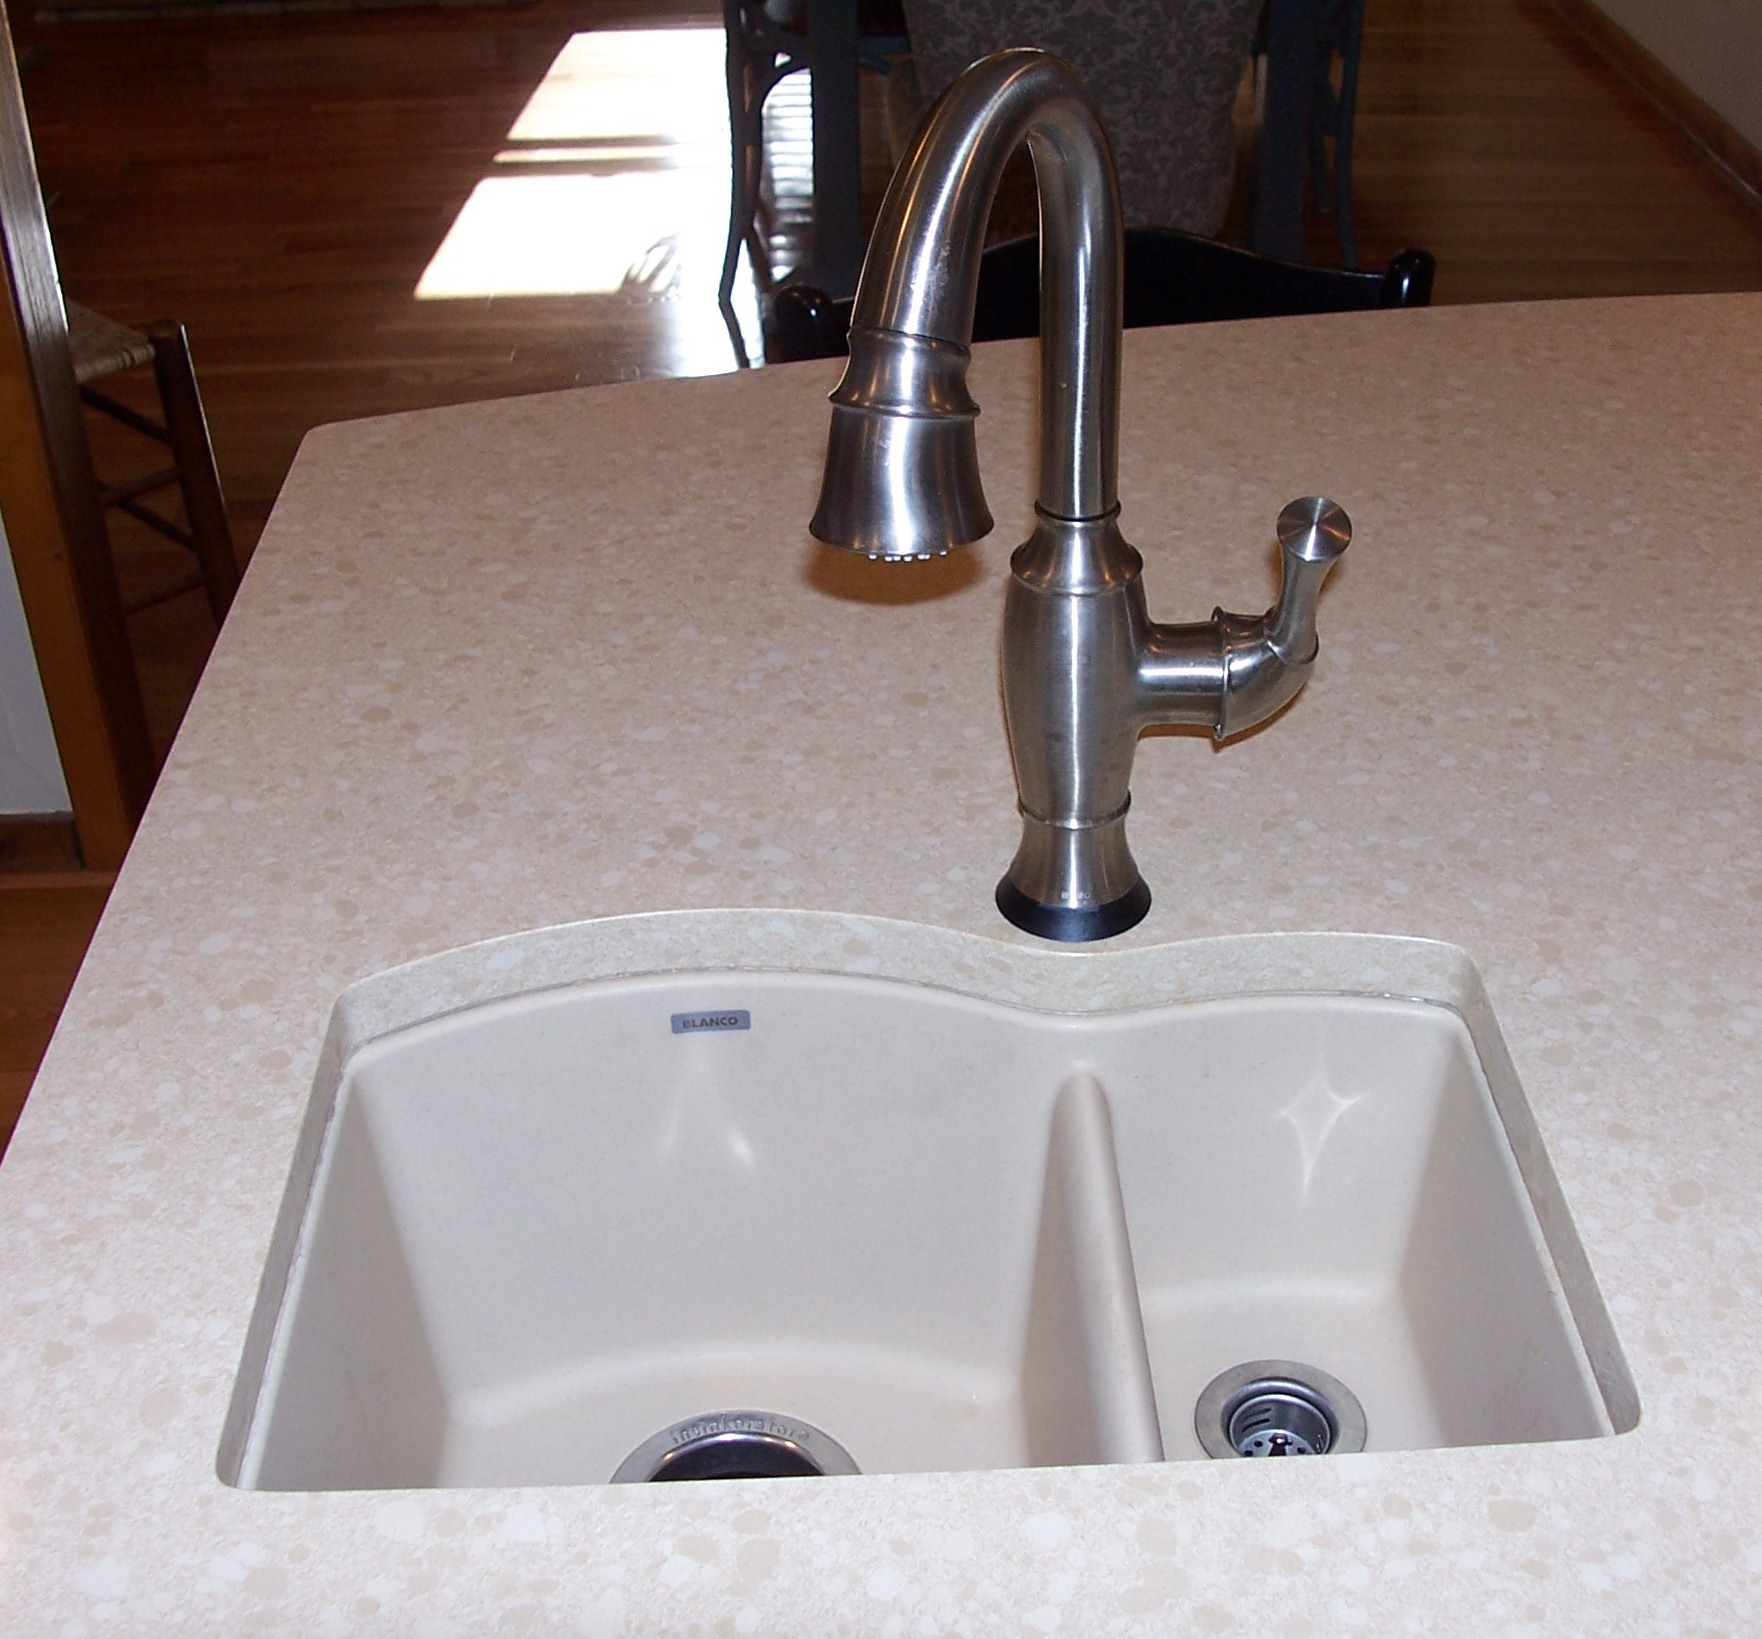 faucet sink fresh prices blanco faucets of kitchen kohler picture